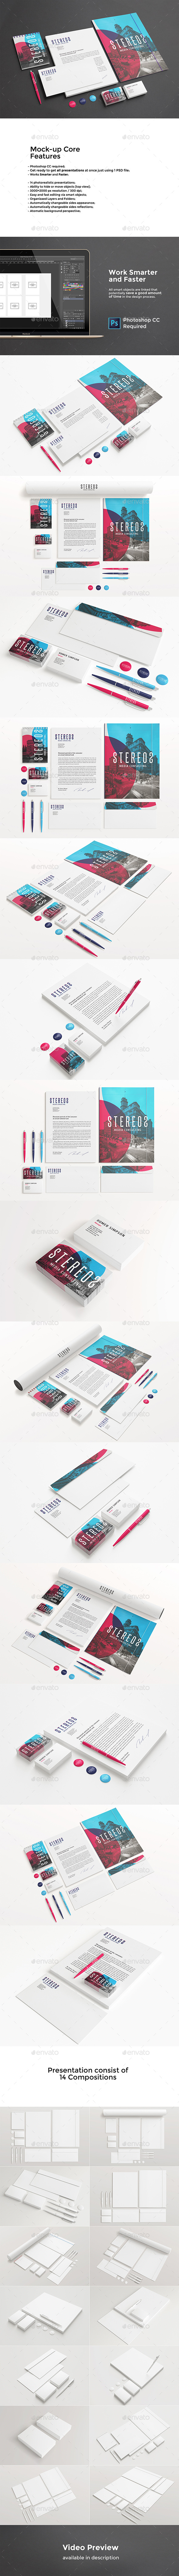 free , freebie , mock up , mockup , mock-up , mockups , psd , branding , logo , corporate identity